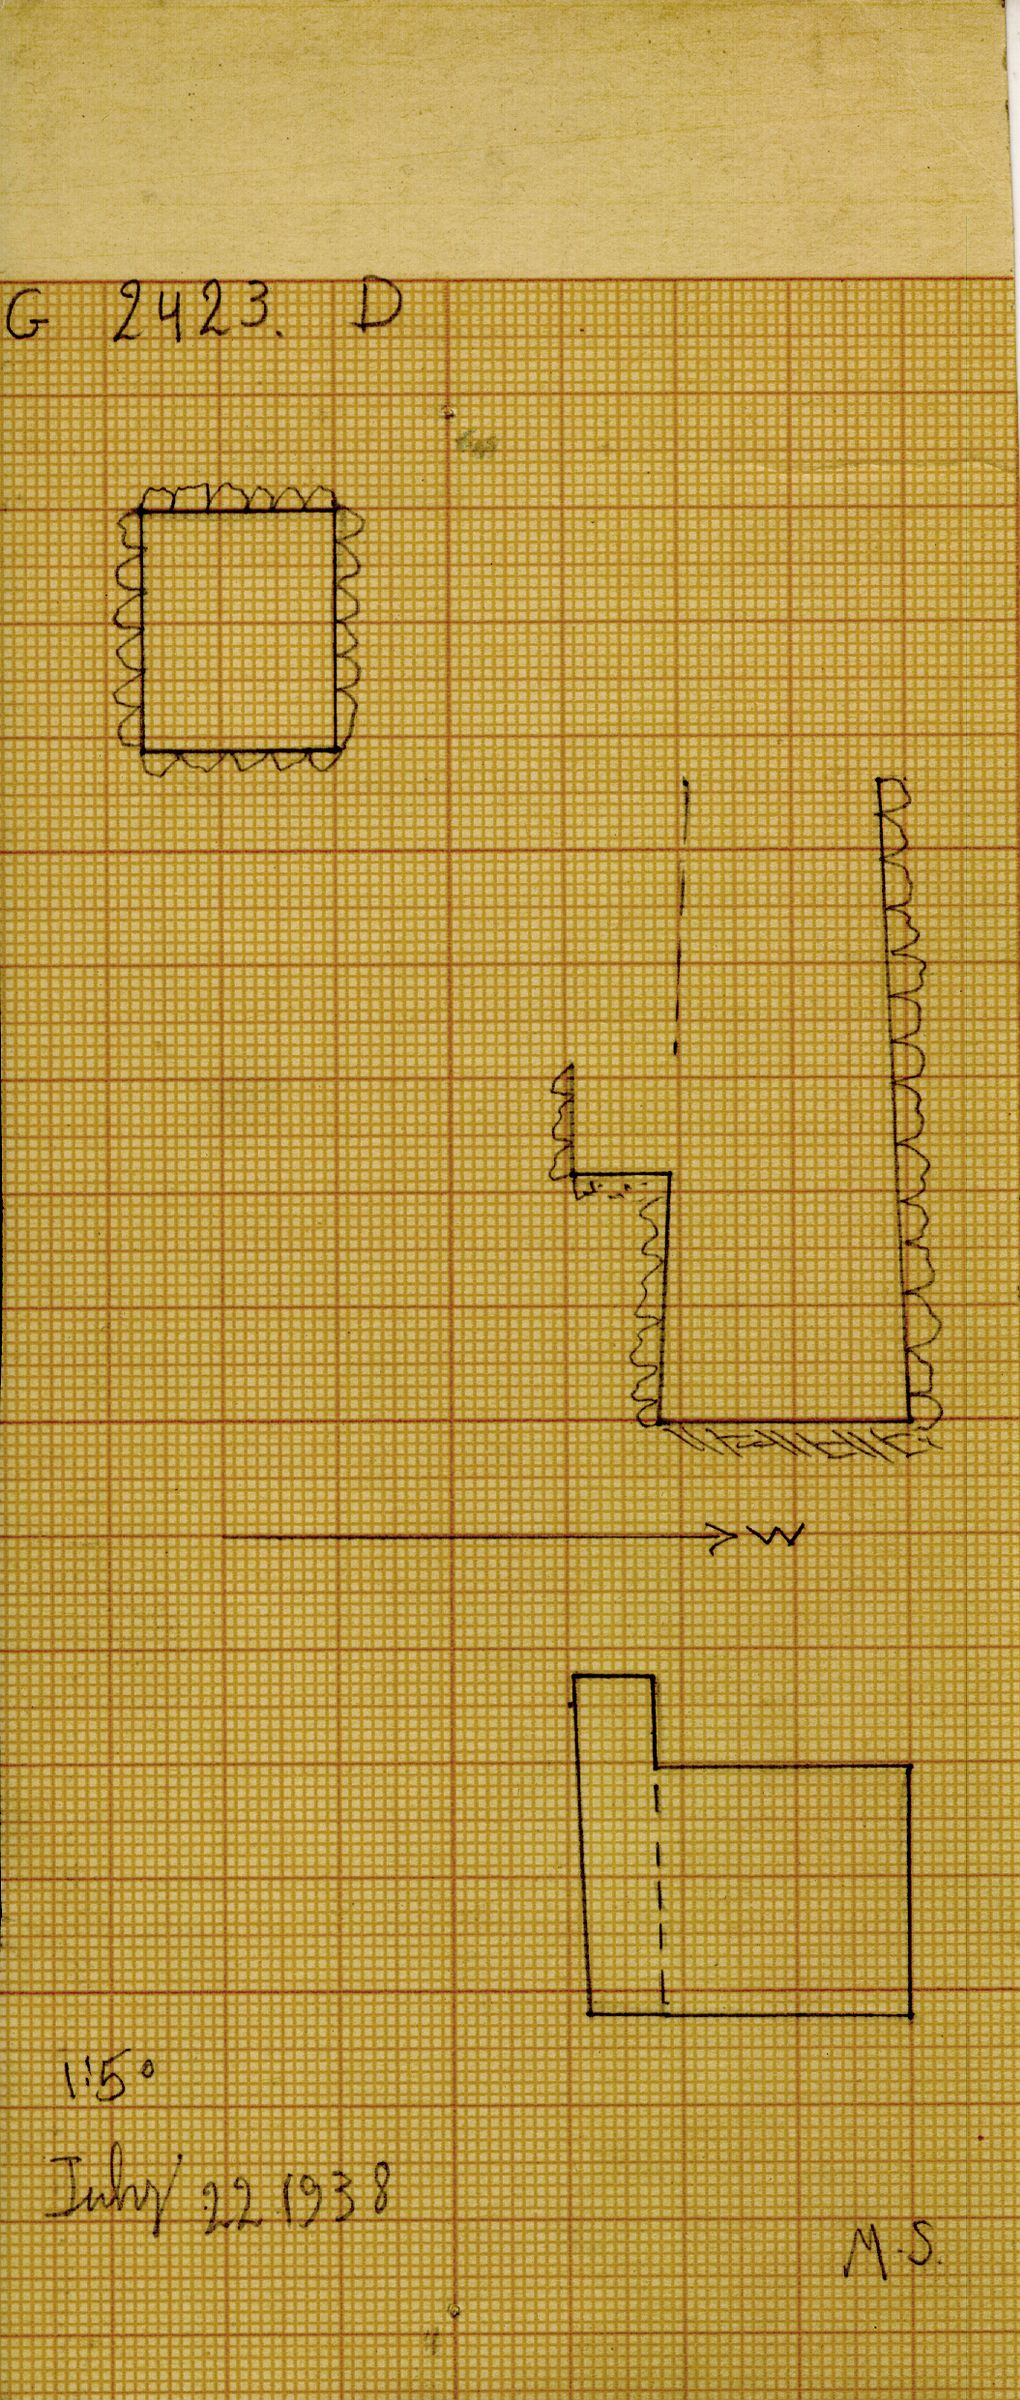 Maps and plans: G 2423, Shaft D